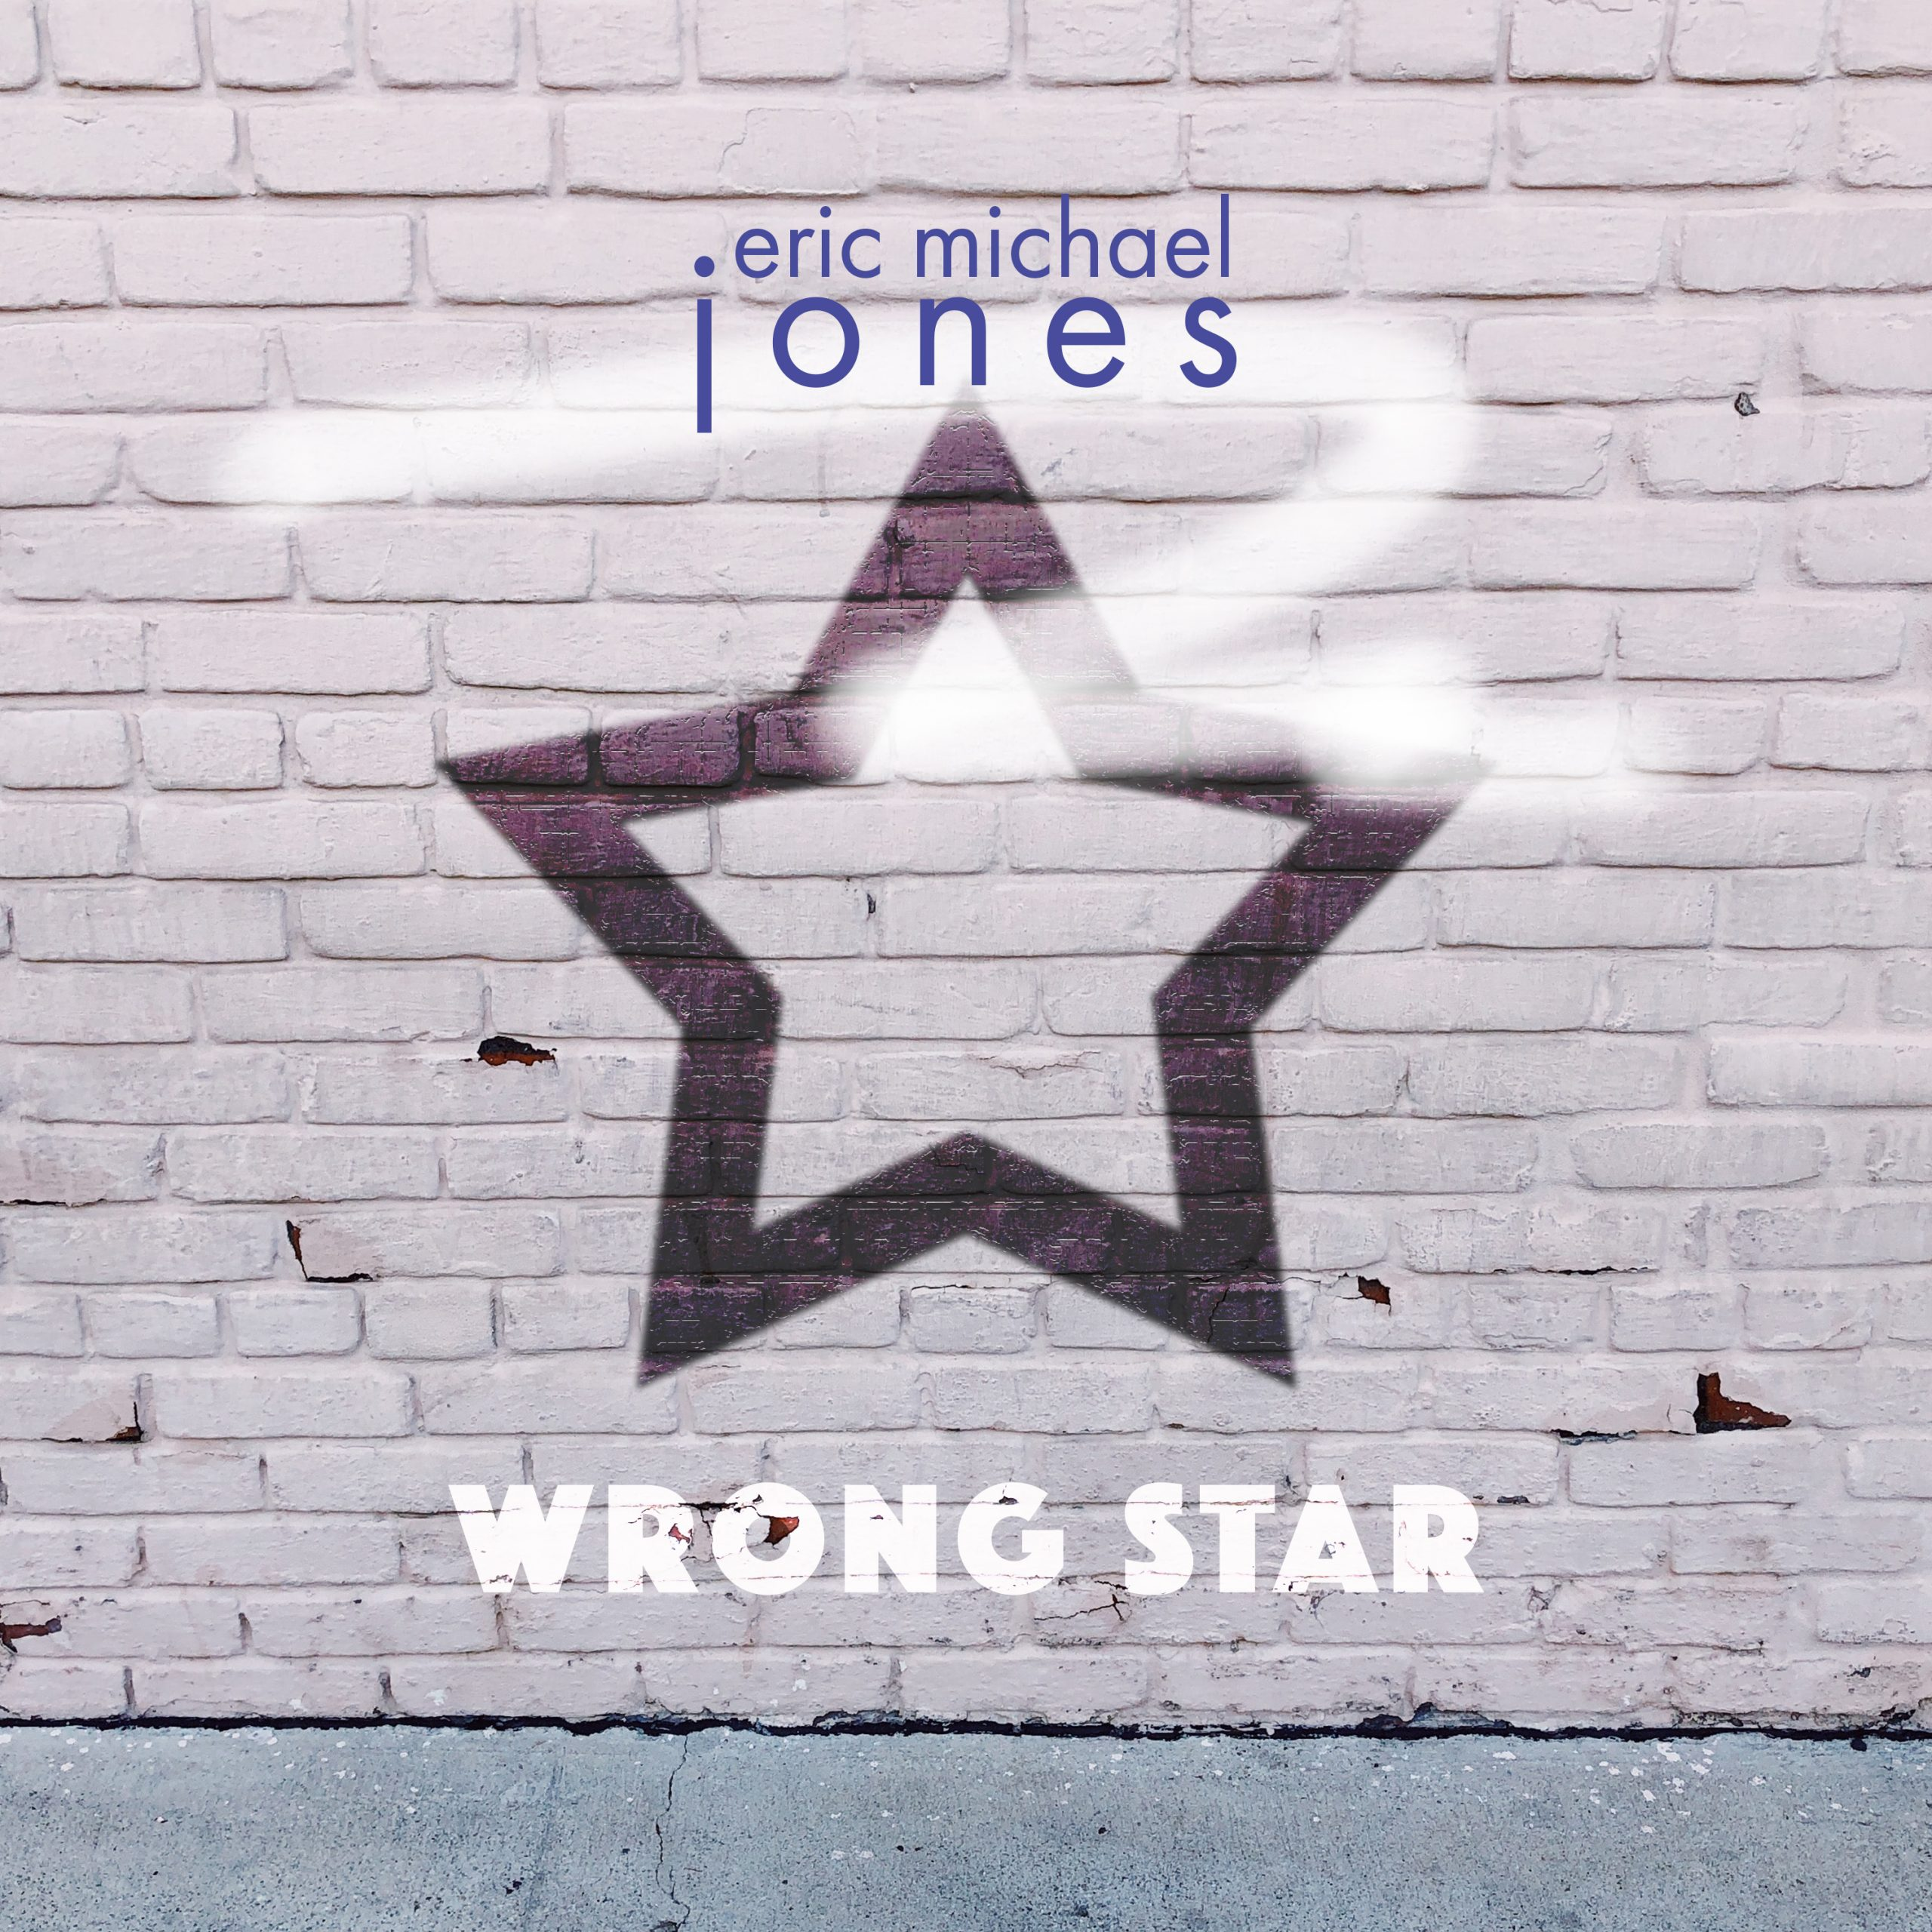 Cover art for Wrong Star, showing a graphic star painted on a brick wall as graffiti